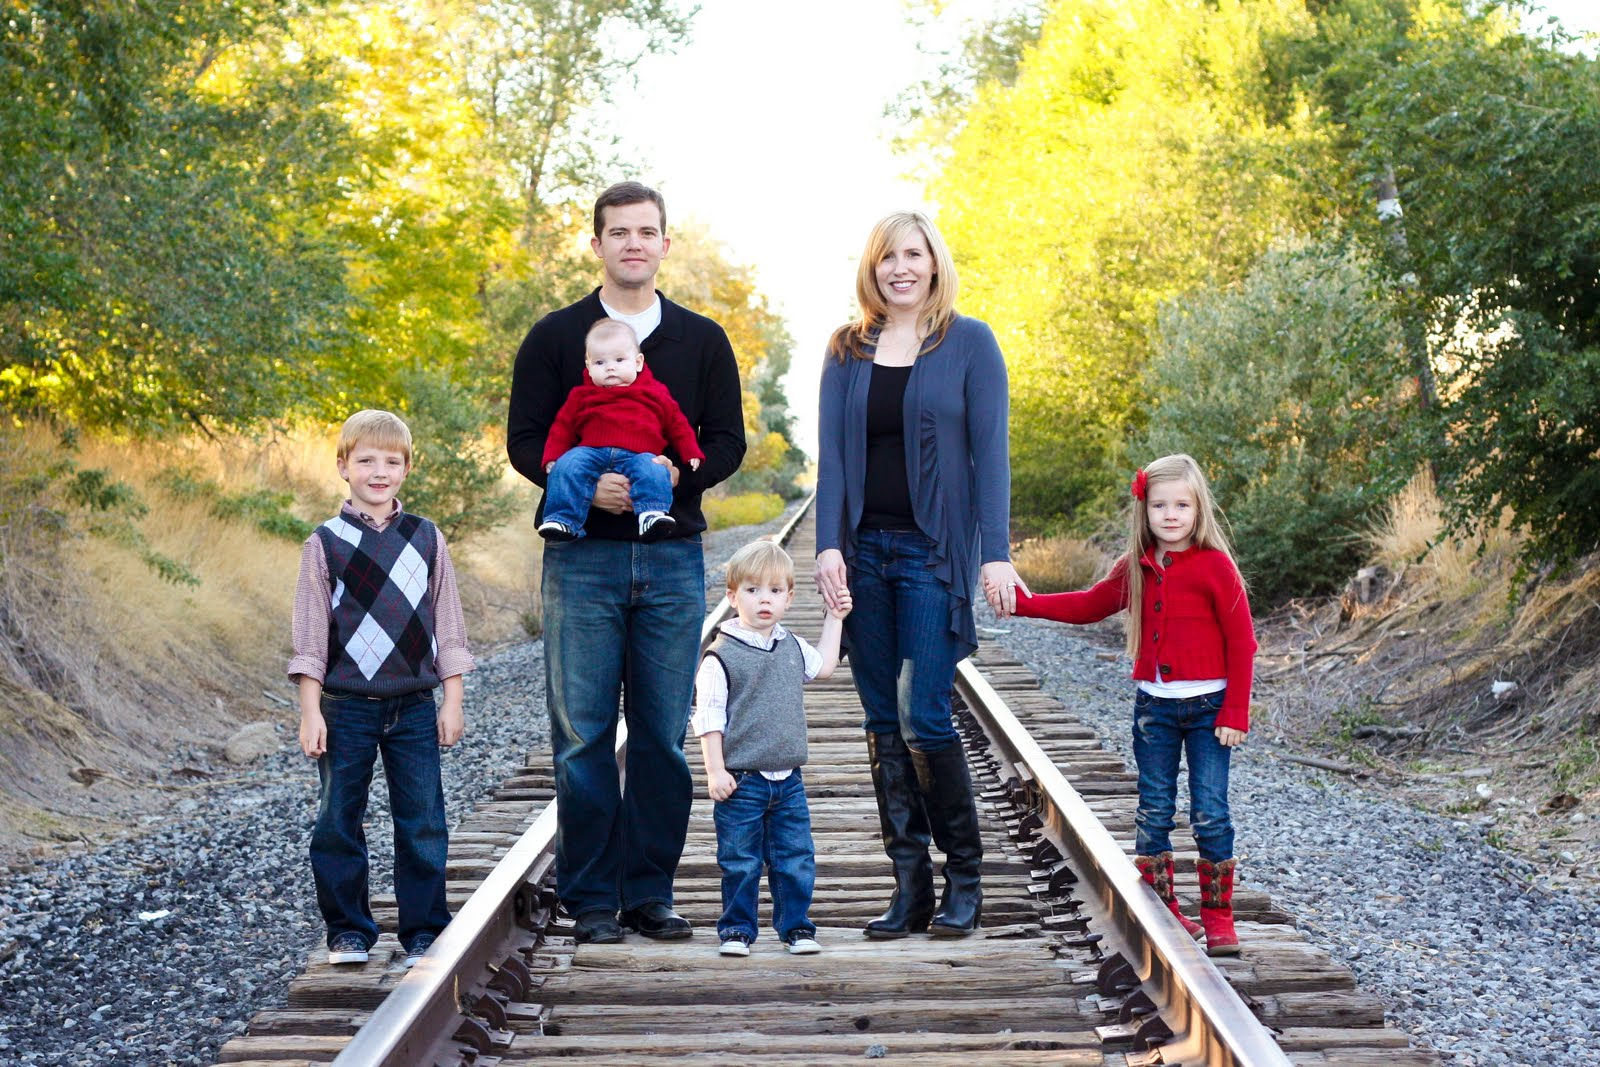 Fall Family Photo Color Schemes http://iwannatalkaboutbrooke.blogspot.com/2011/04/how-to-coordinate-for-family-photo.html